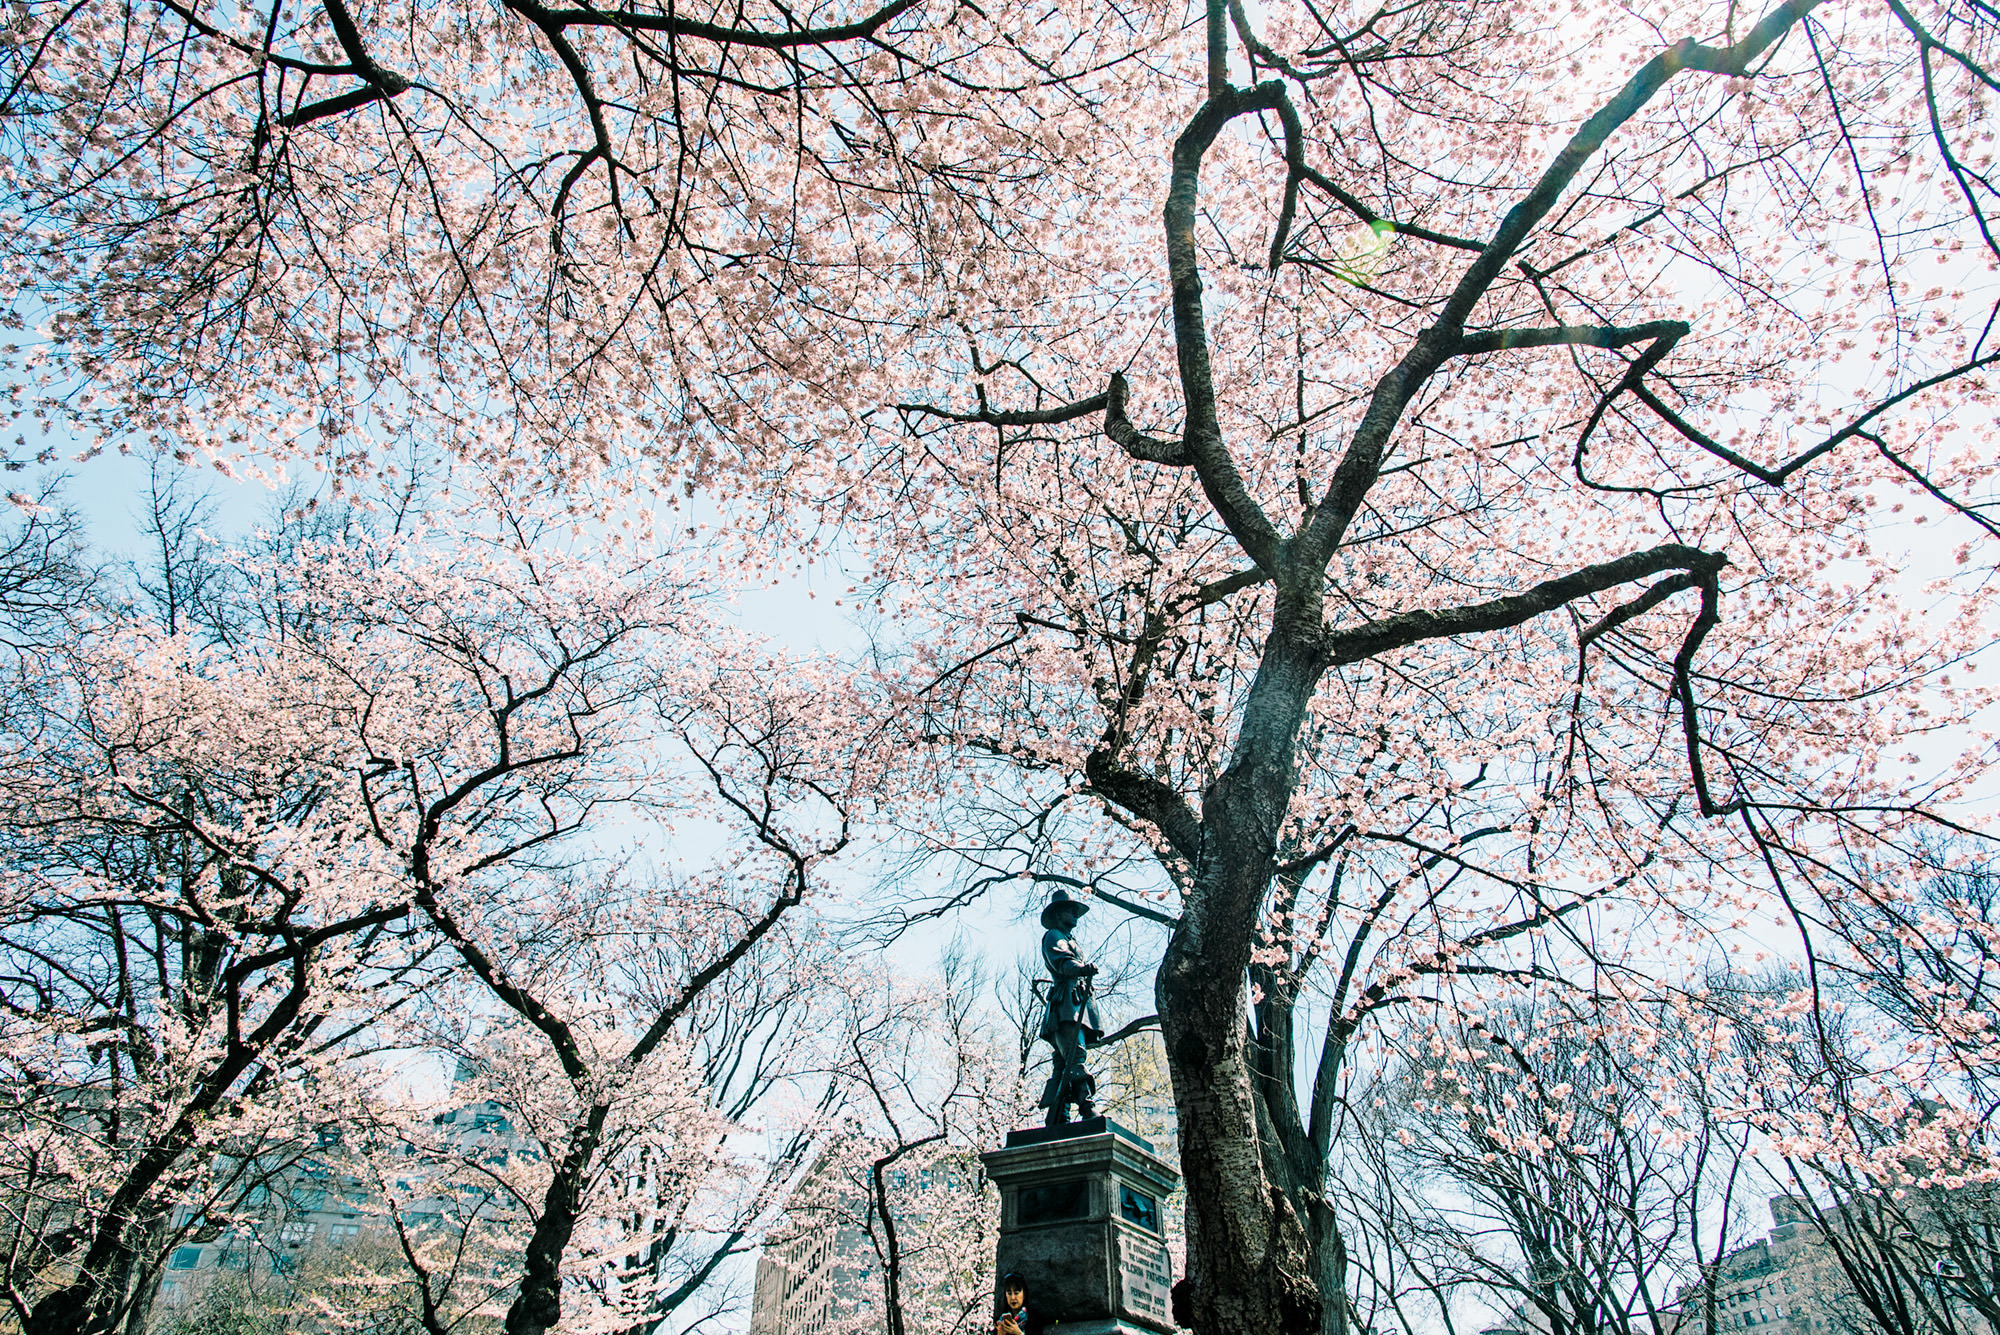 cherry-blossom-trees-central-park-new-york